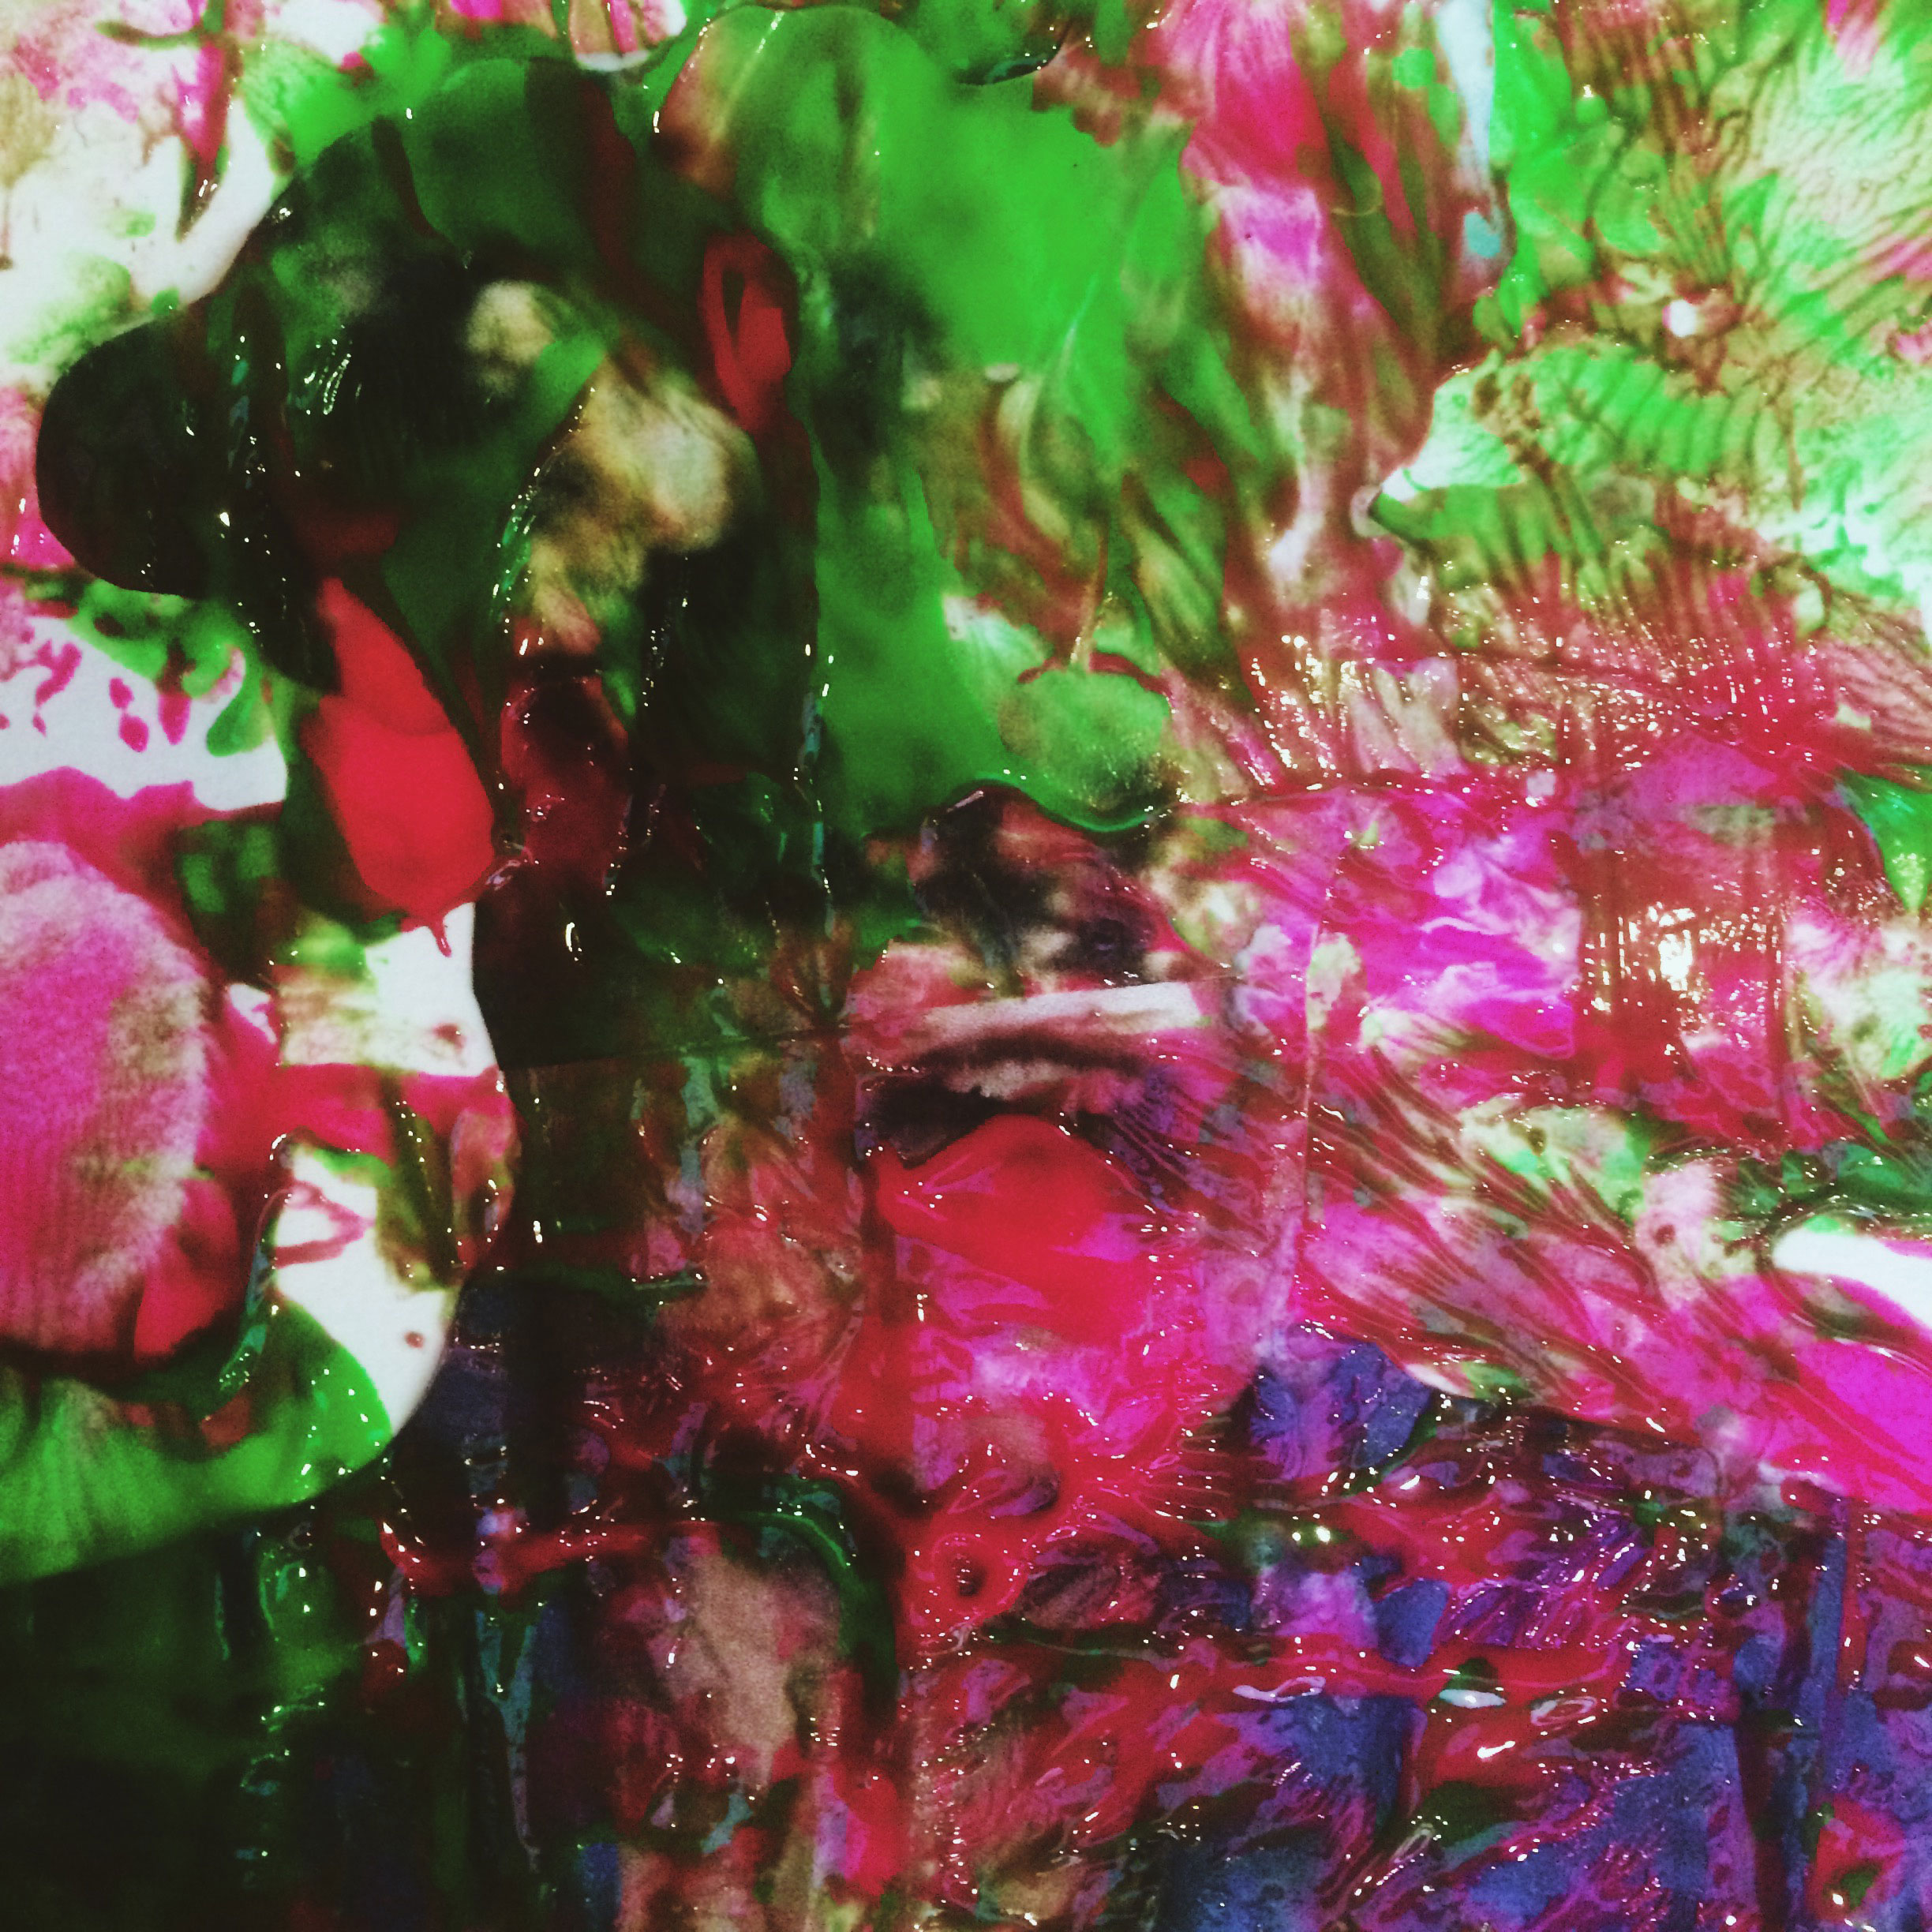 Artwork by Lily Wales, a collage showing a distorted face in lime green and bright pink